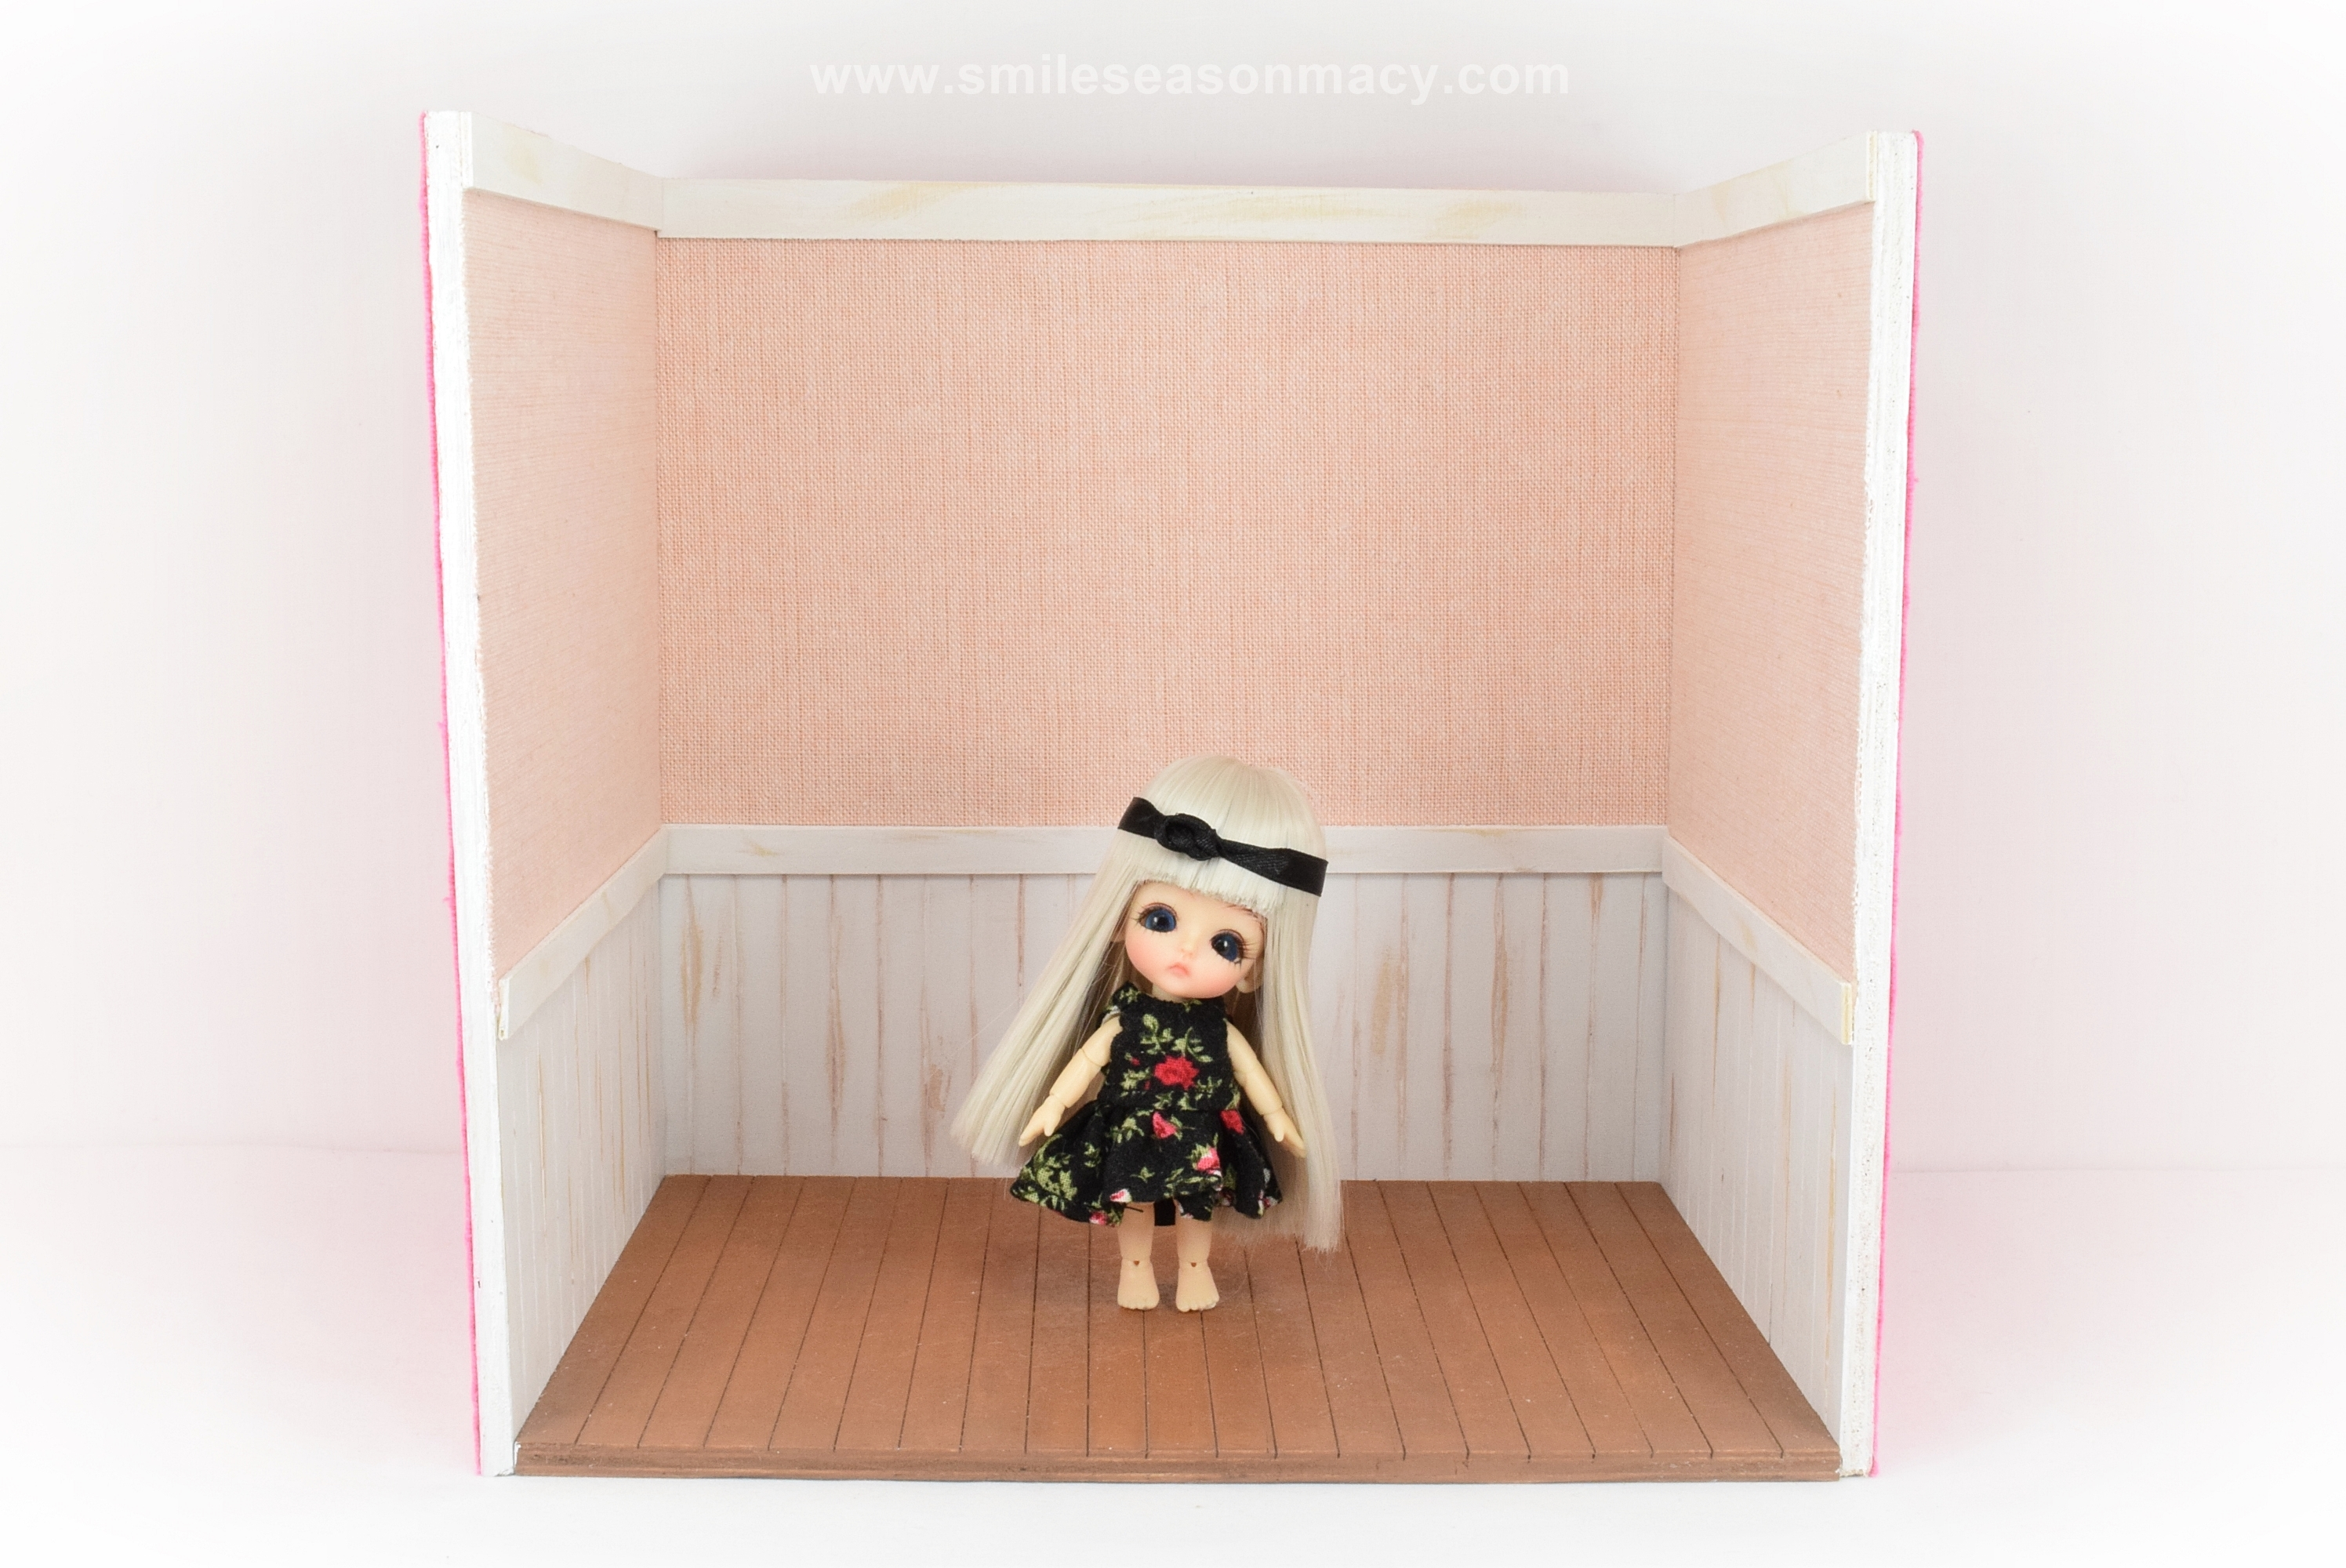 doll house_about 224 x 156 x 212mm (2)